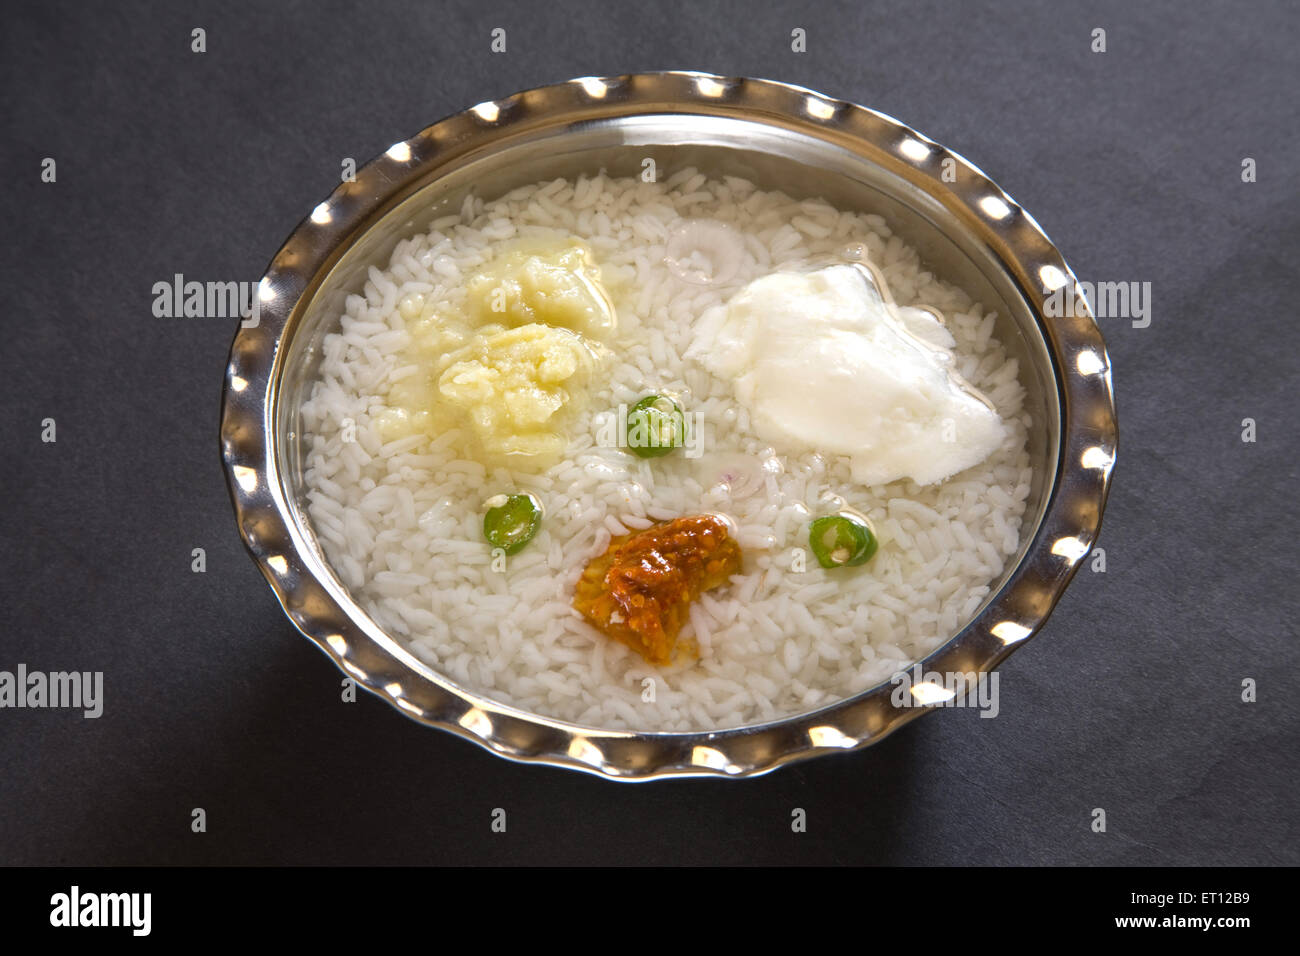 Indian lunch pakhala rice pickle mash potato with chillies and yoghurt in steel bowl on black background 15 April - Stock Image